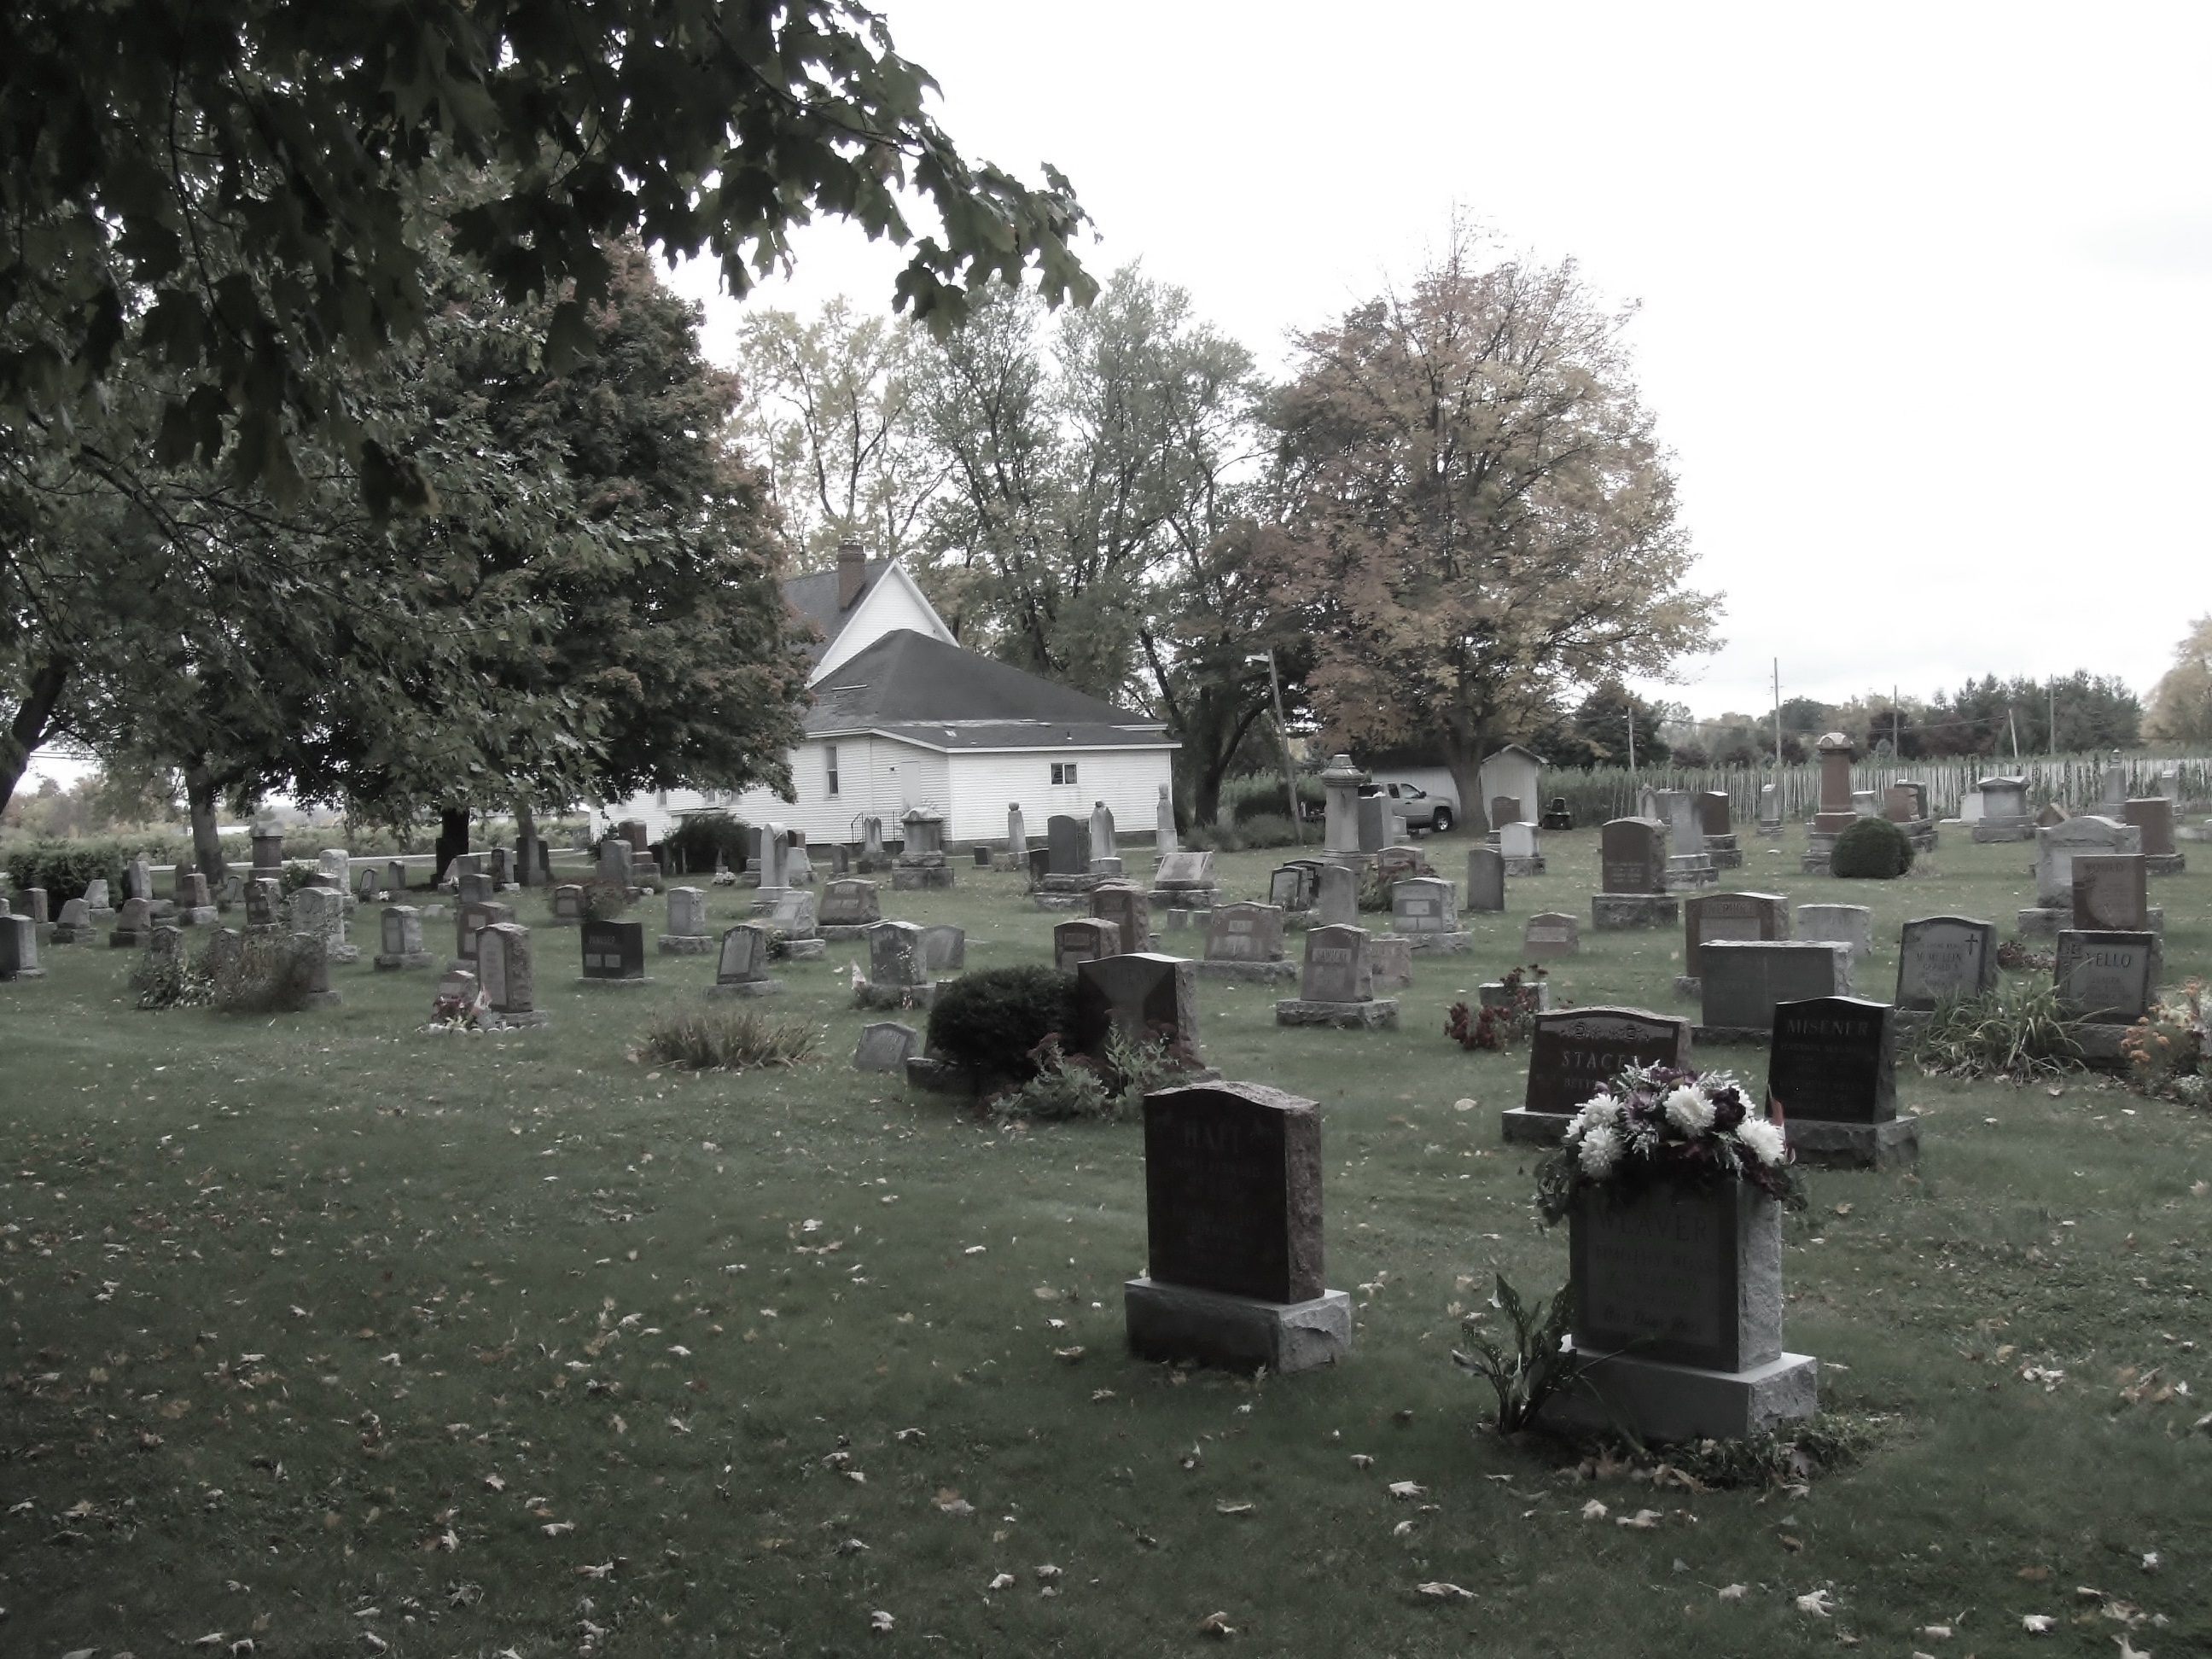 Serenity at a cemetery